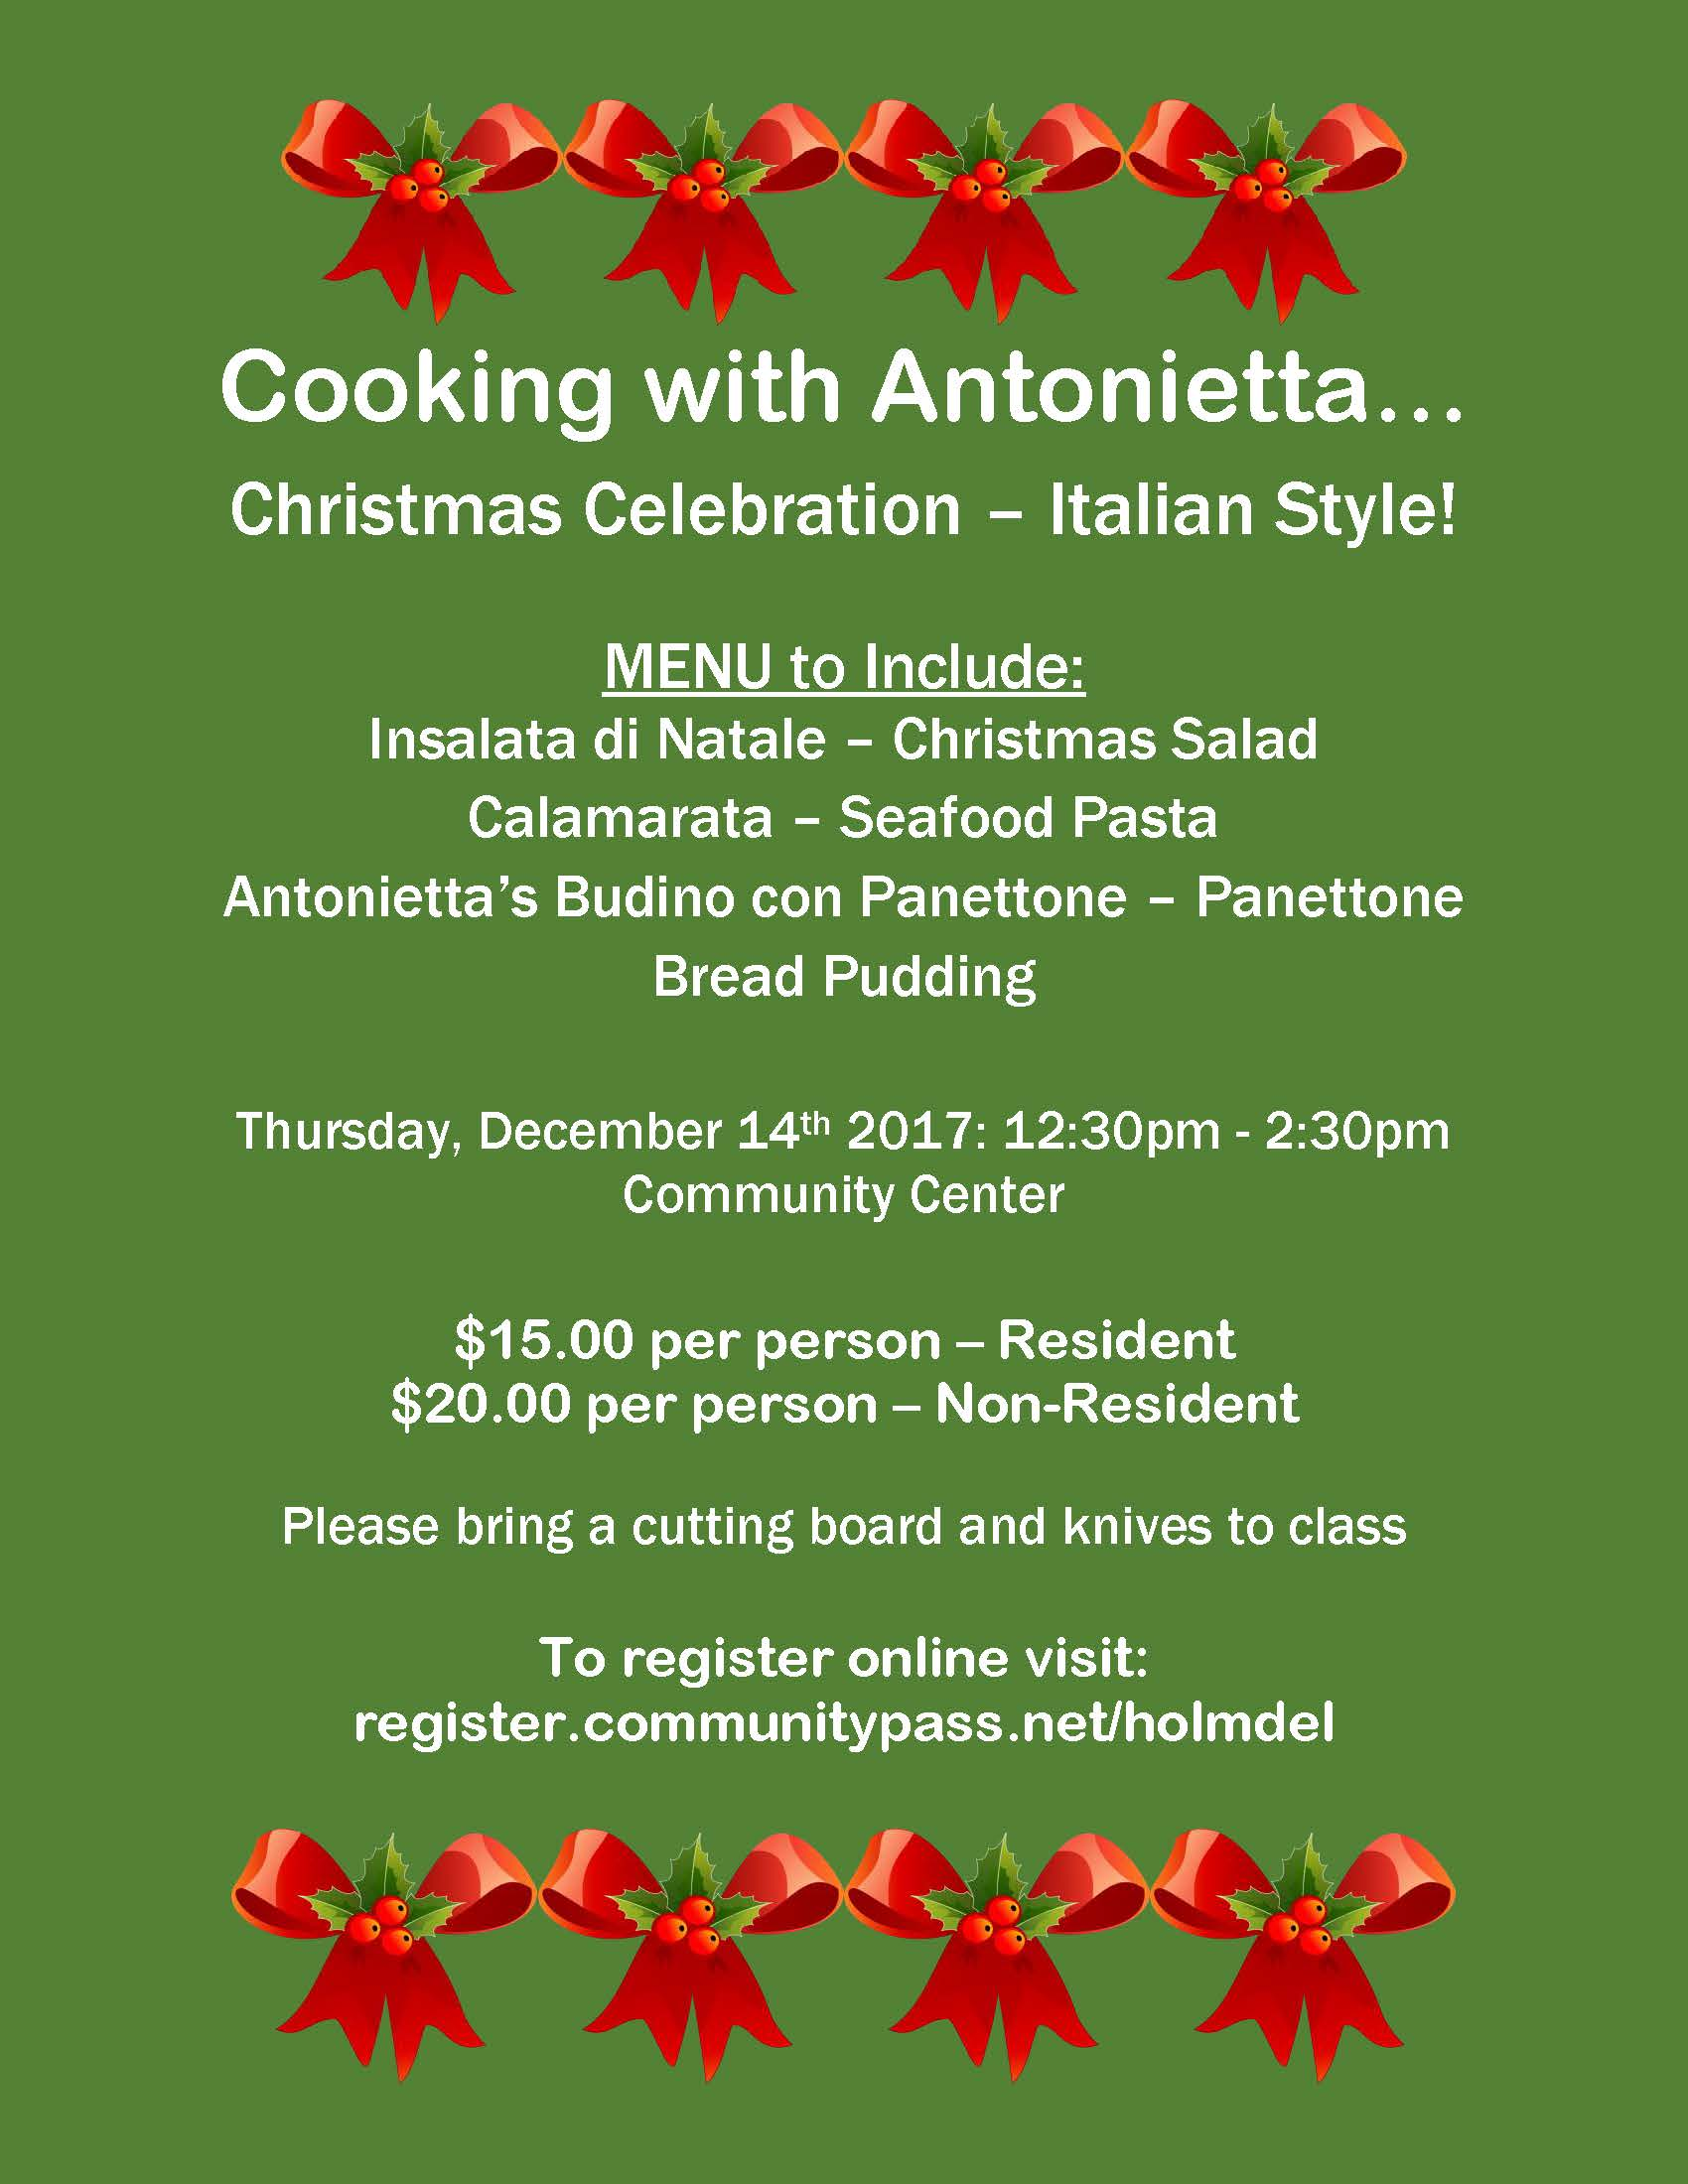 Cooking with Antonietta-December 2017